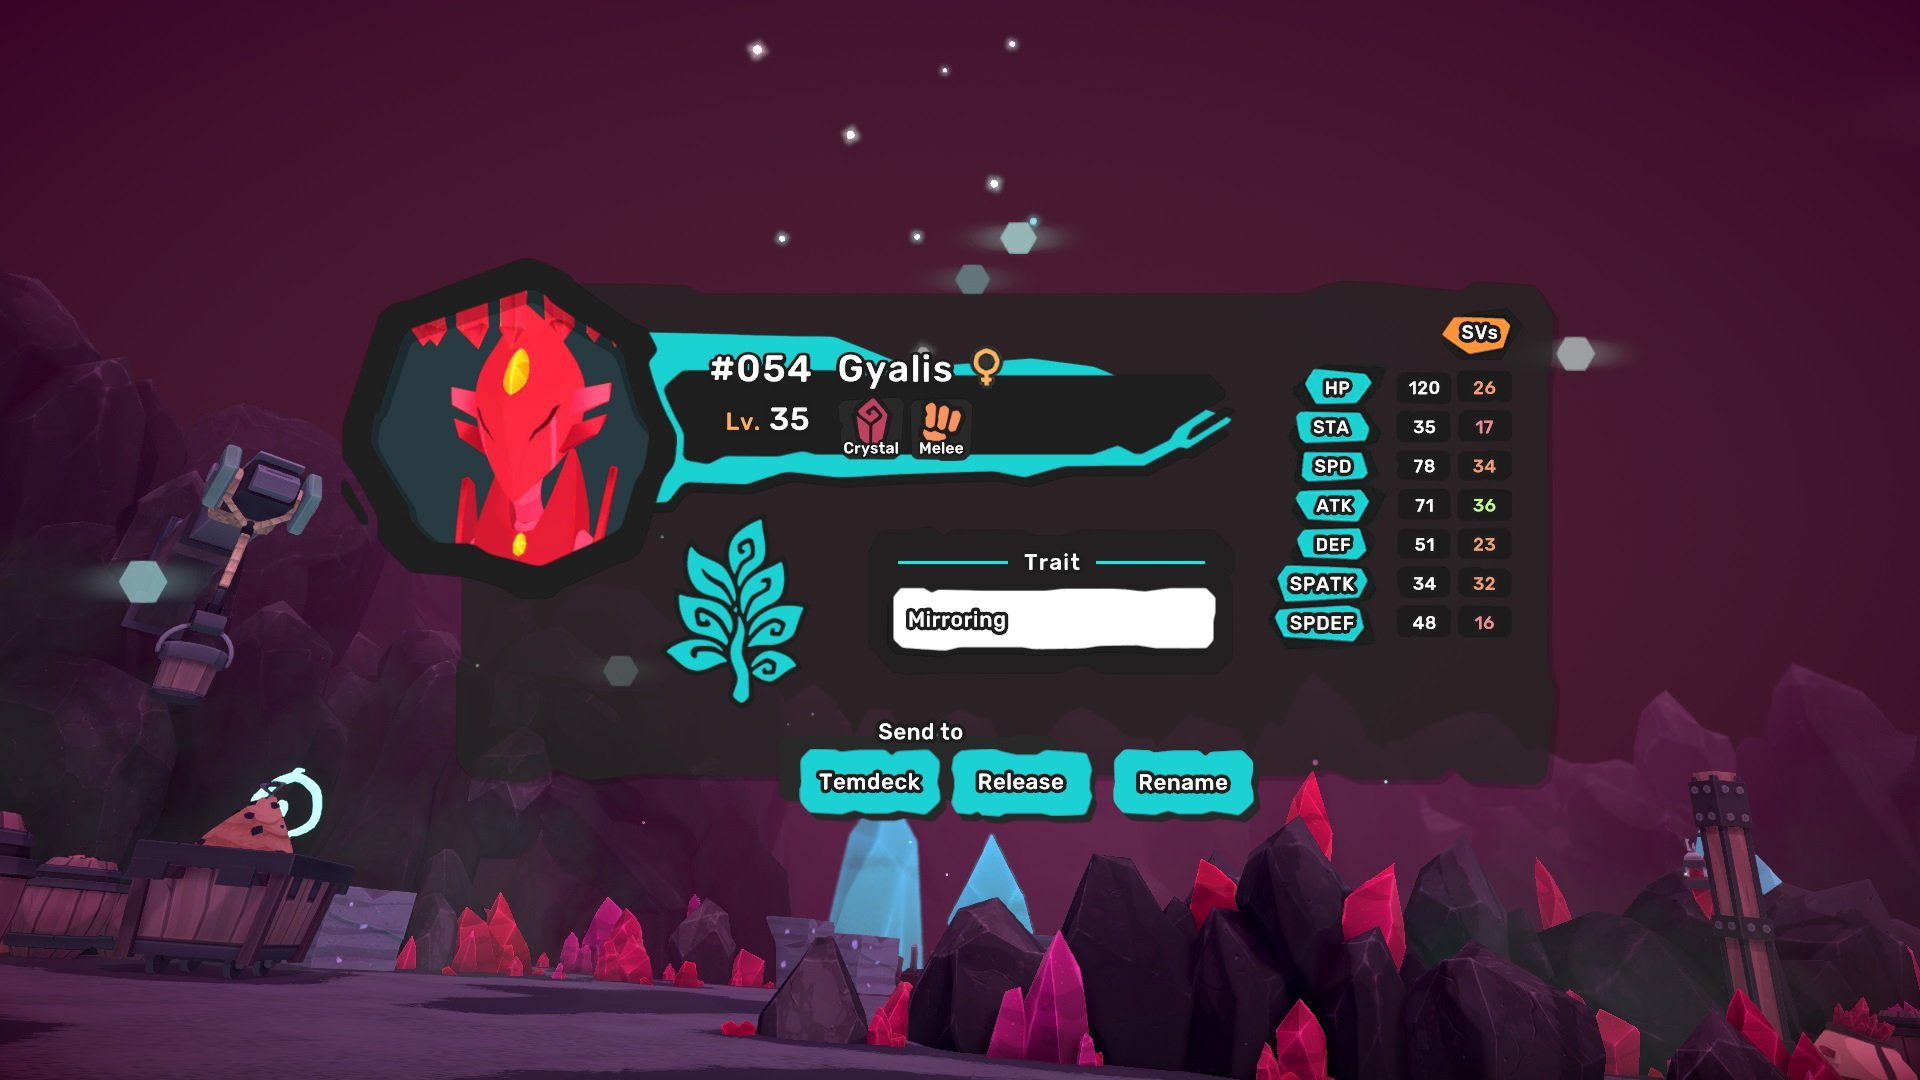 Gyalis is a Crystal and Melee Type that will spawn at Level 34 or Level 35 in Temtem.